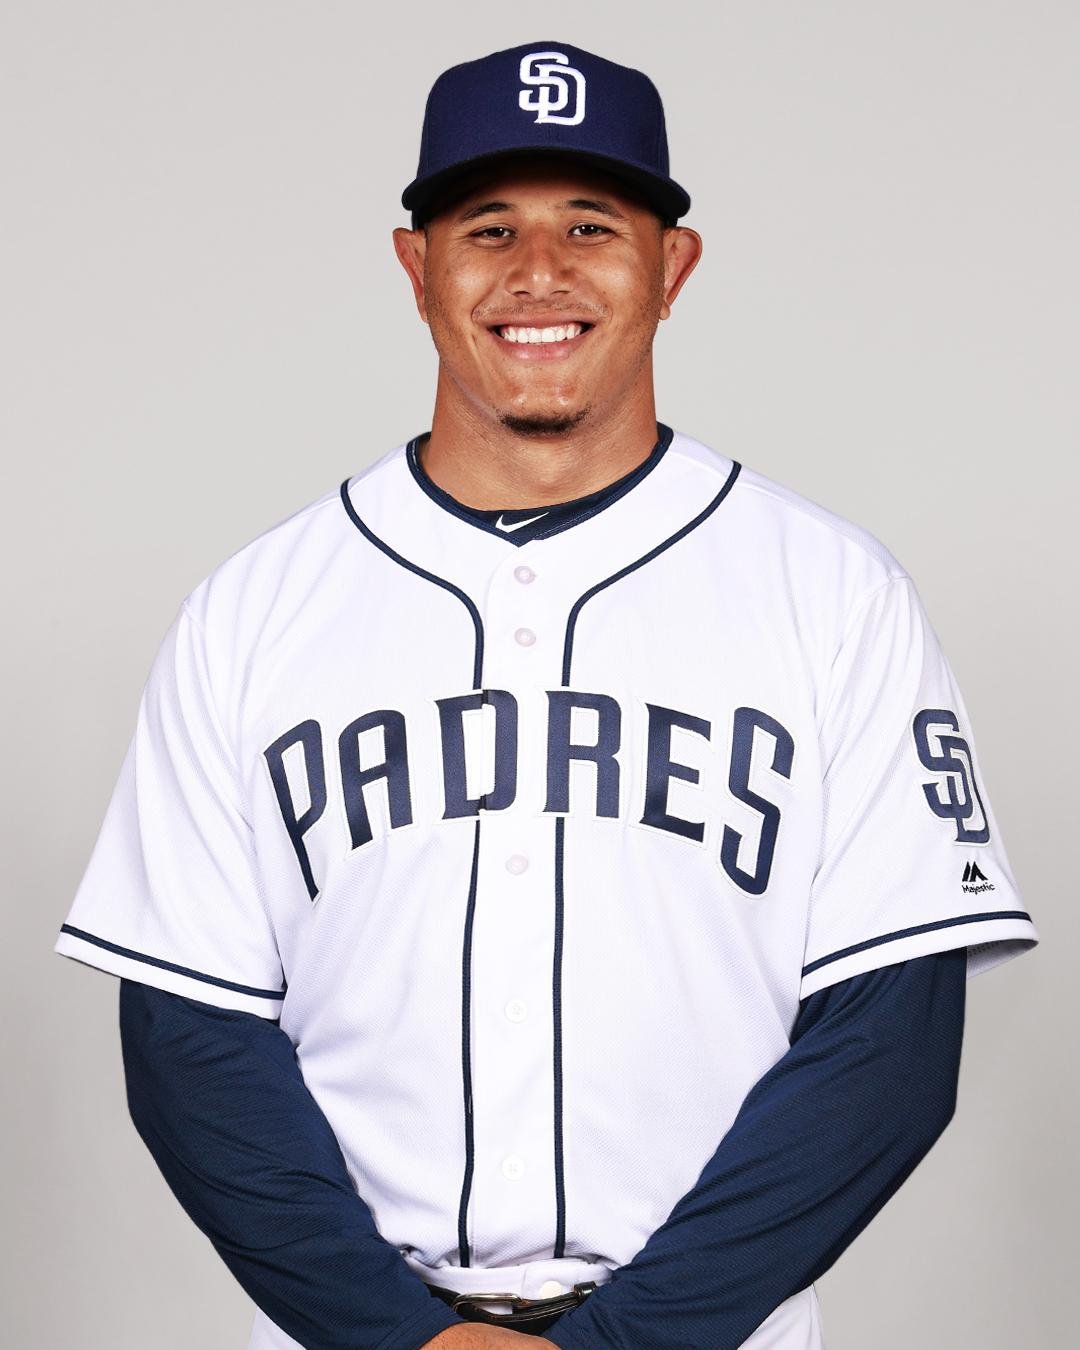 Introducing the newest San Diego Padre. https://t.co/E3LzPxiCev